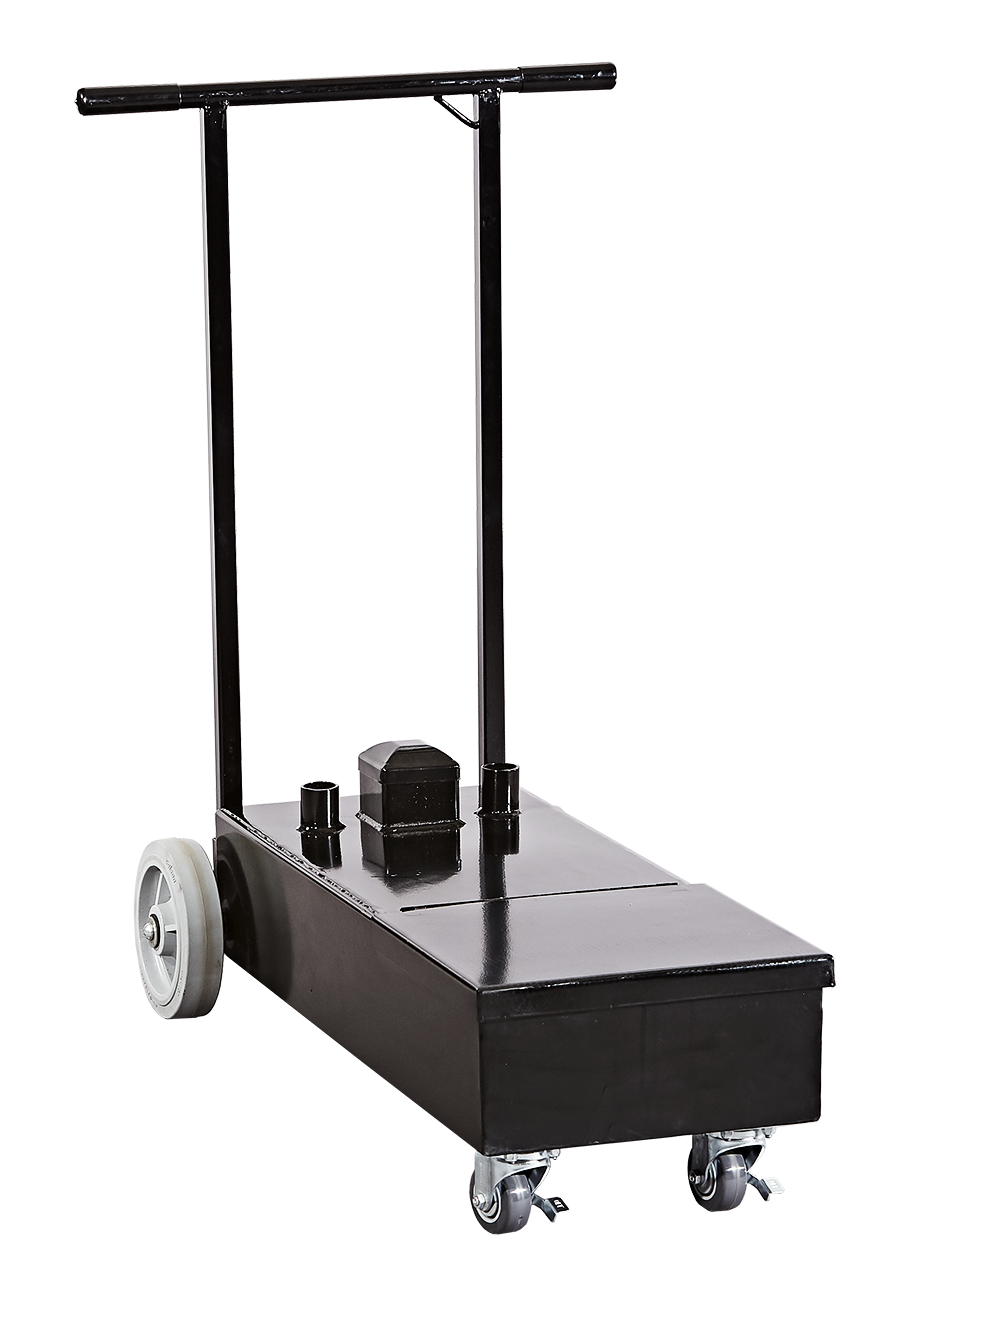 grease shuttle, grease caddy, grease cart, heated grease caddy, heated grease cart, heated grease shuttle